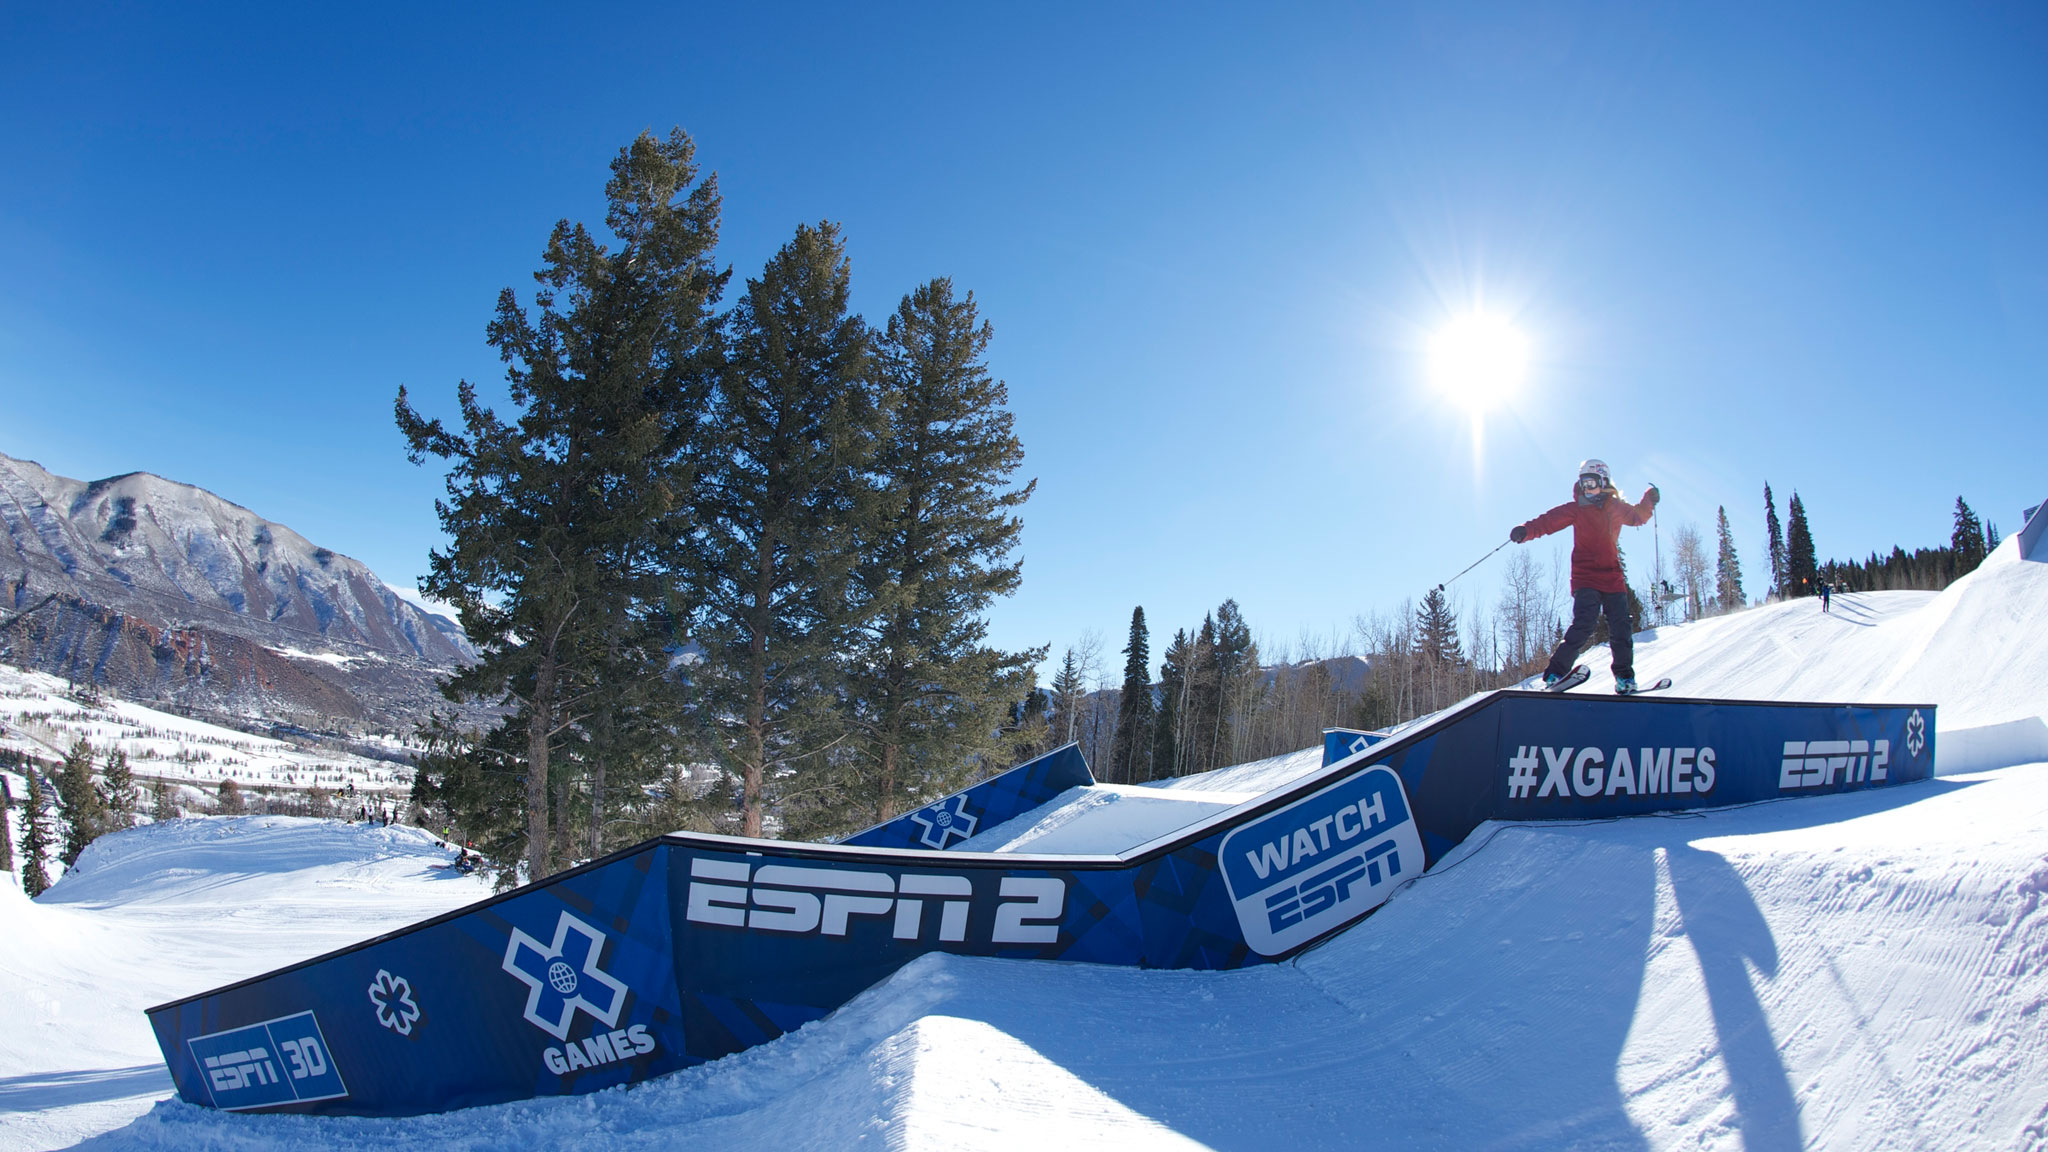 Anna Segal didn't compete at X Games Aspen this year, but she will be competing in slopestyle in Sochi.